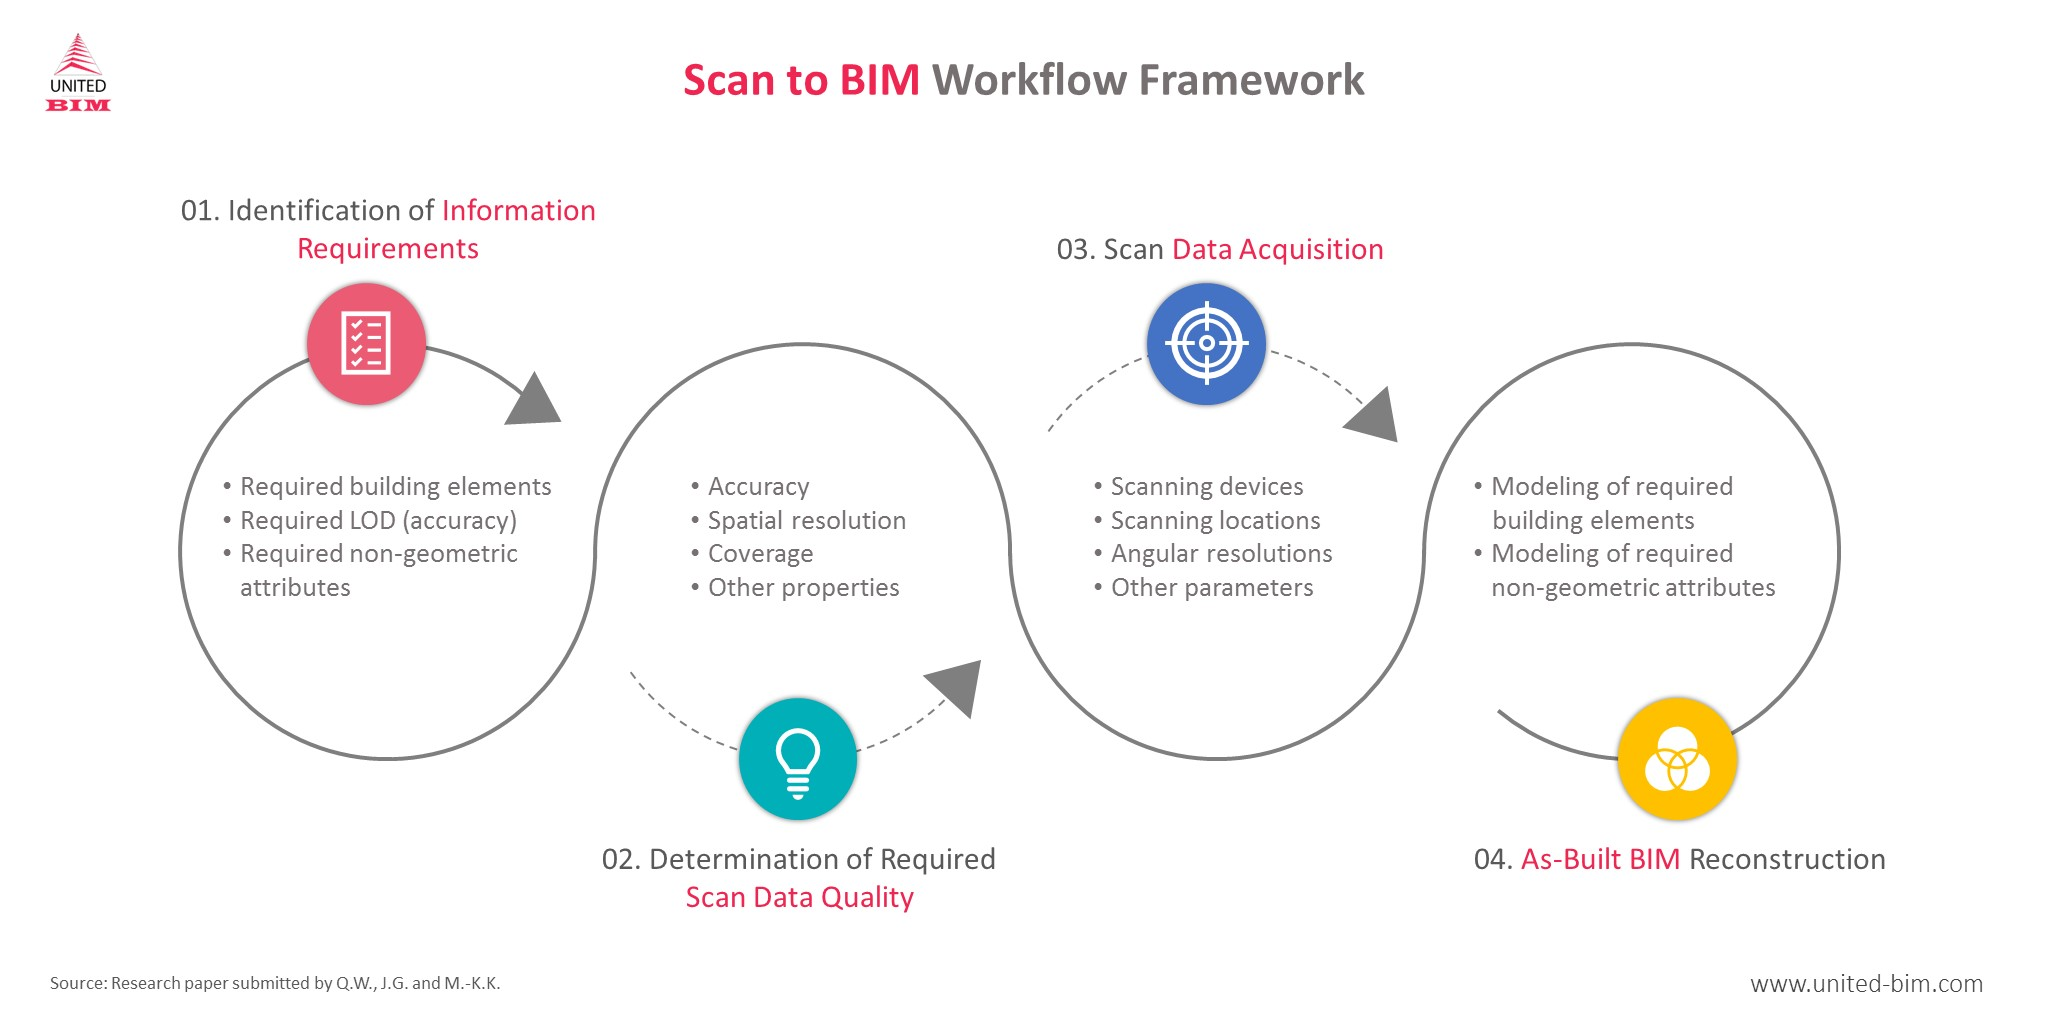 Scan to BIM Process Workflow by United-BIM